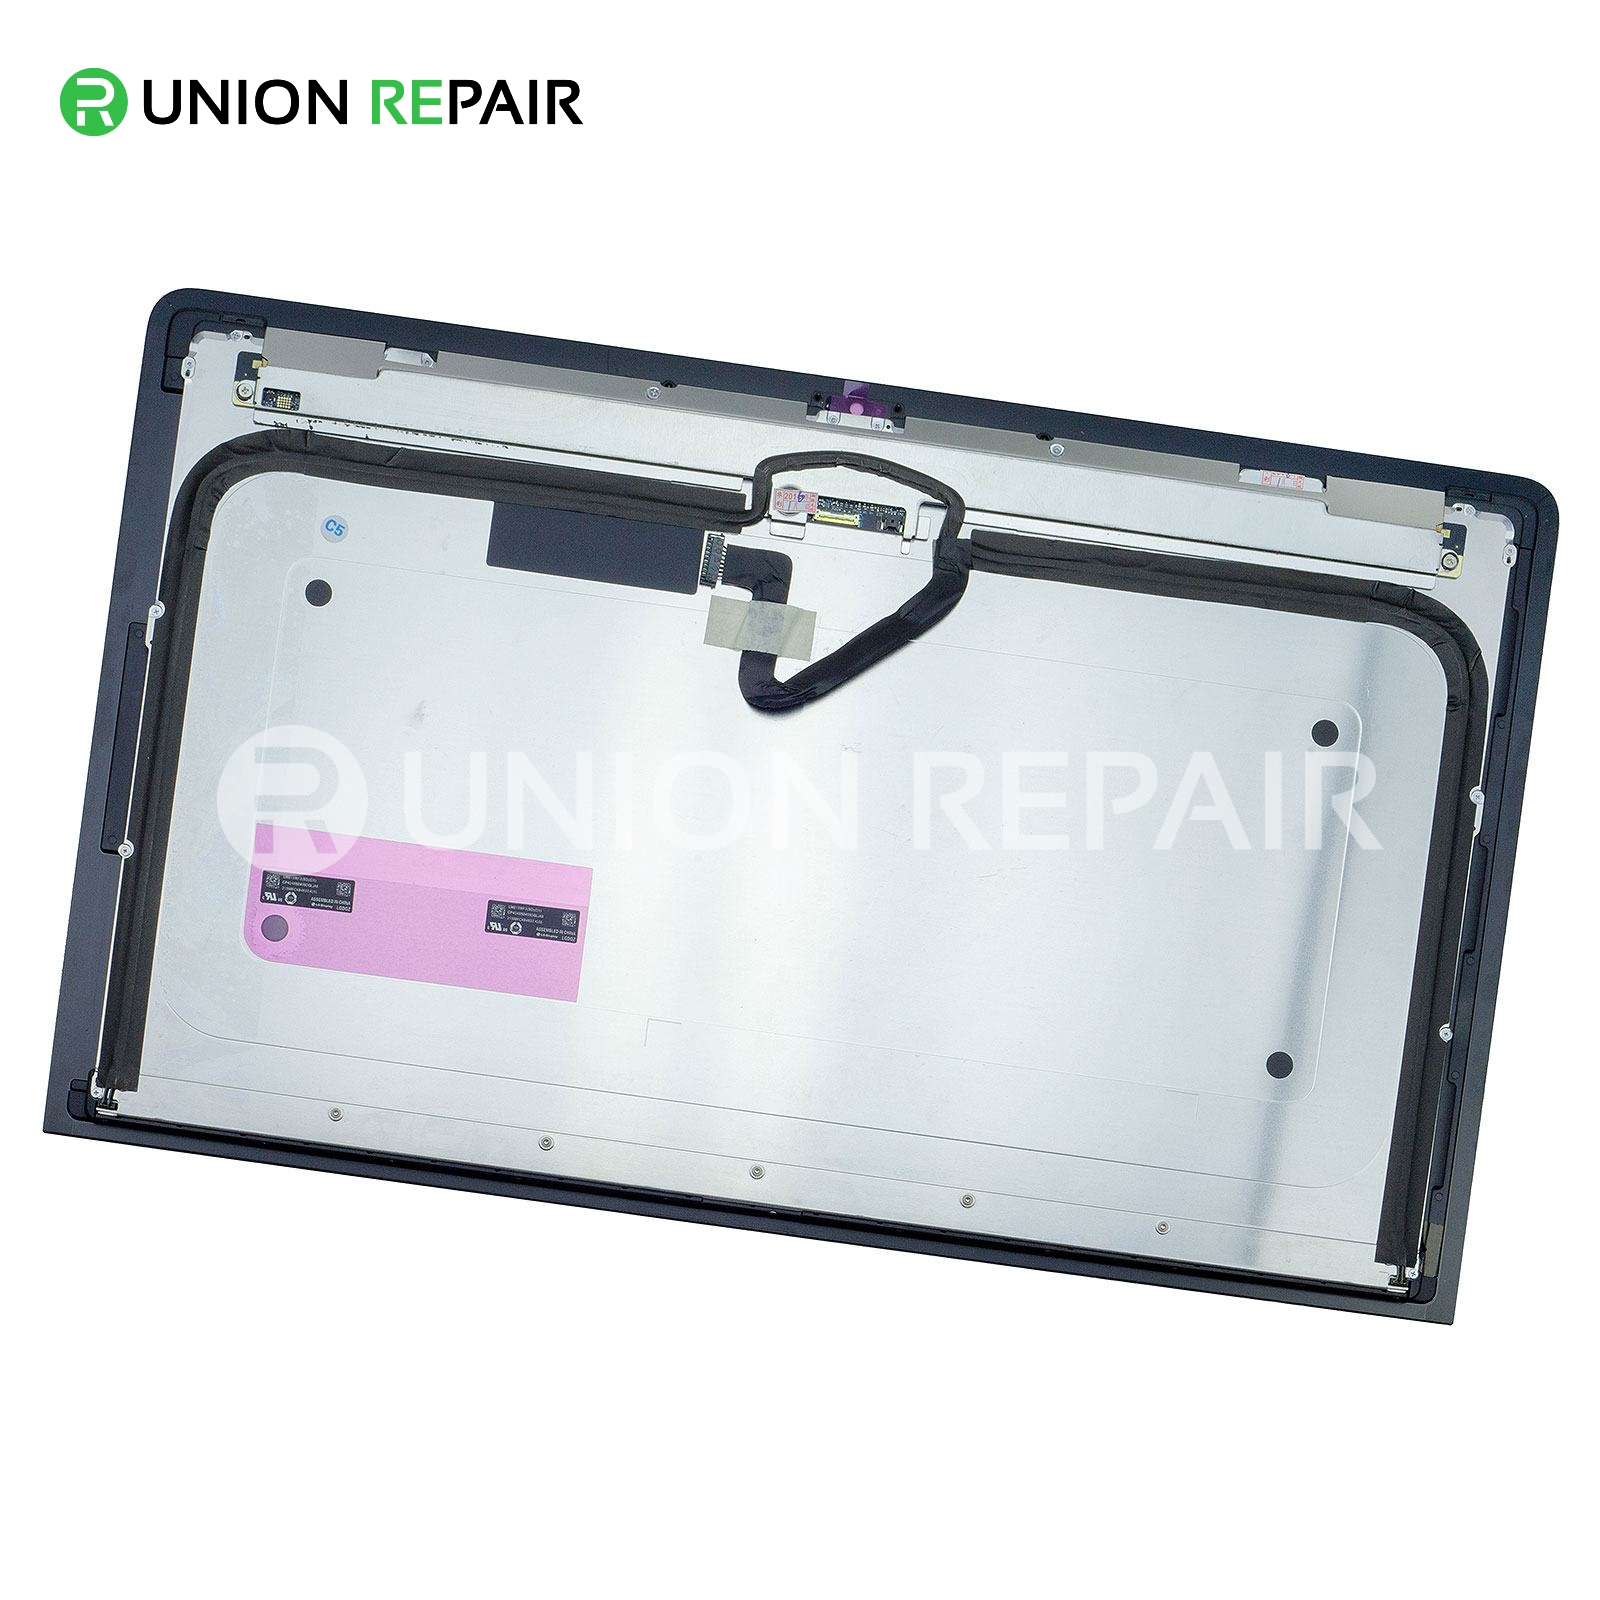 """LCD Display Panel + Glass Cover for iMac 21.5"""" A1418 (Late 2012 - Late 2017)"""